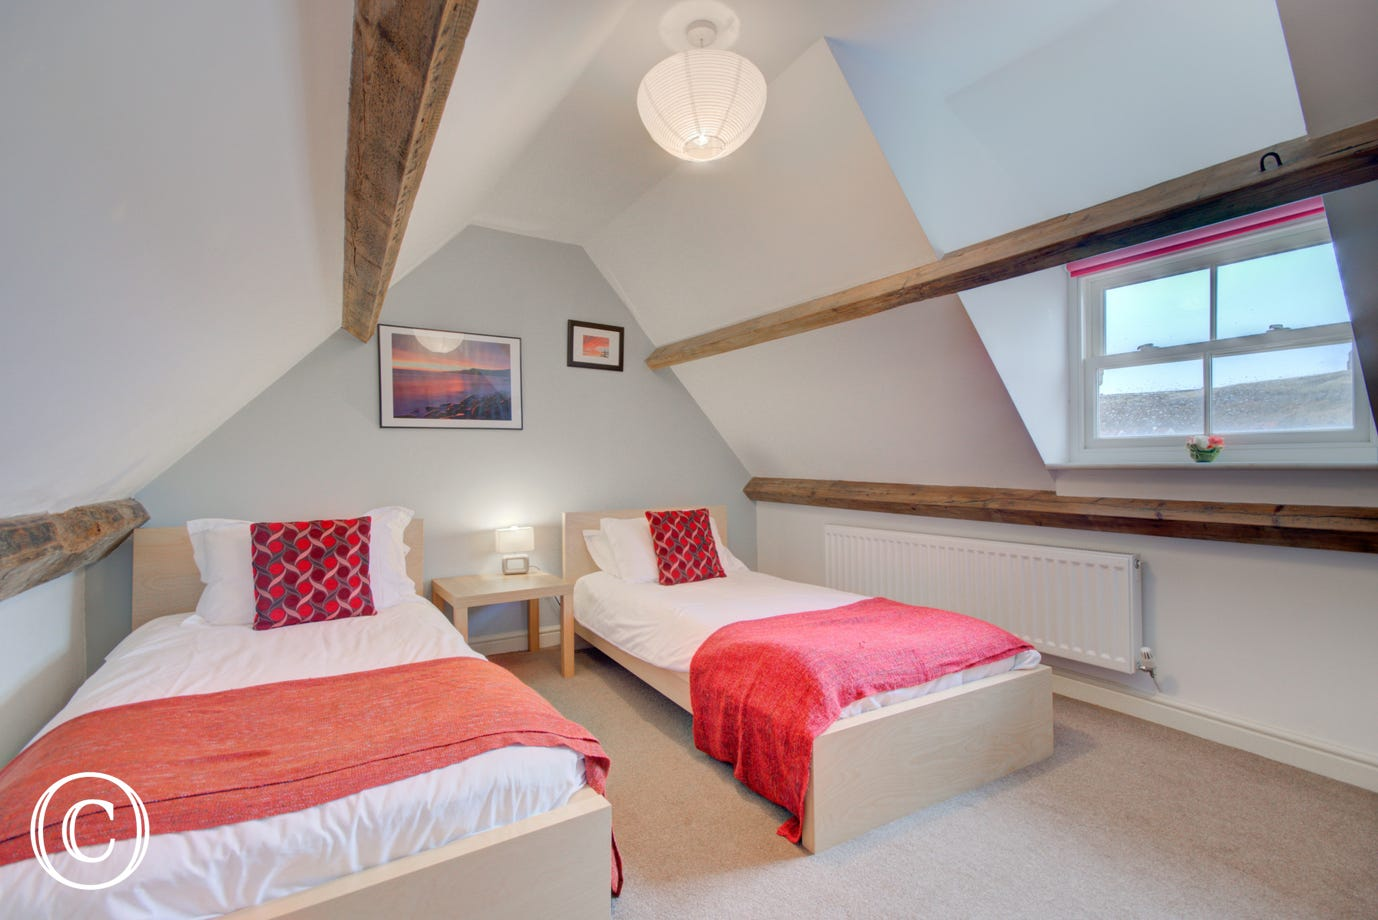 Twin Bedroom with single beds on the second floor. The dormer window provides plenty of light.